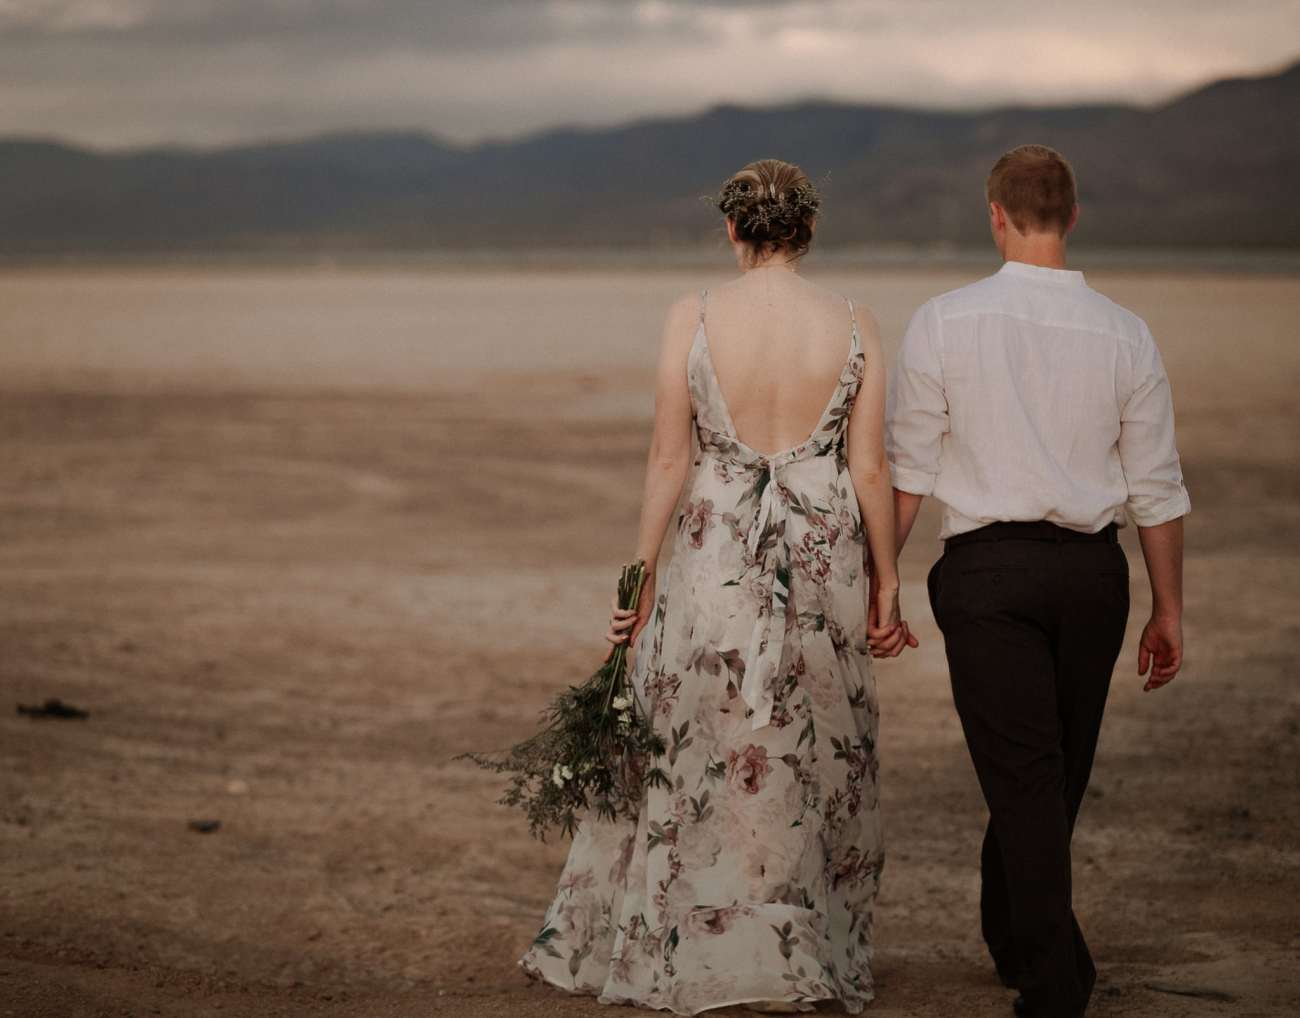 Bride and groom walk away from camera in Las Vegas Dry Lake bed at sunrise